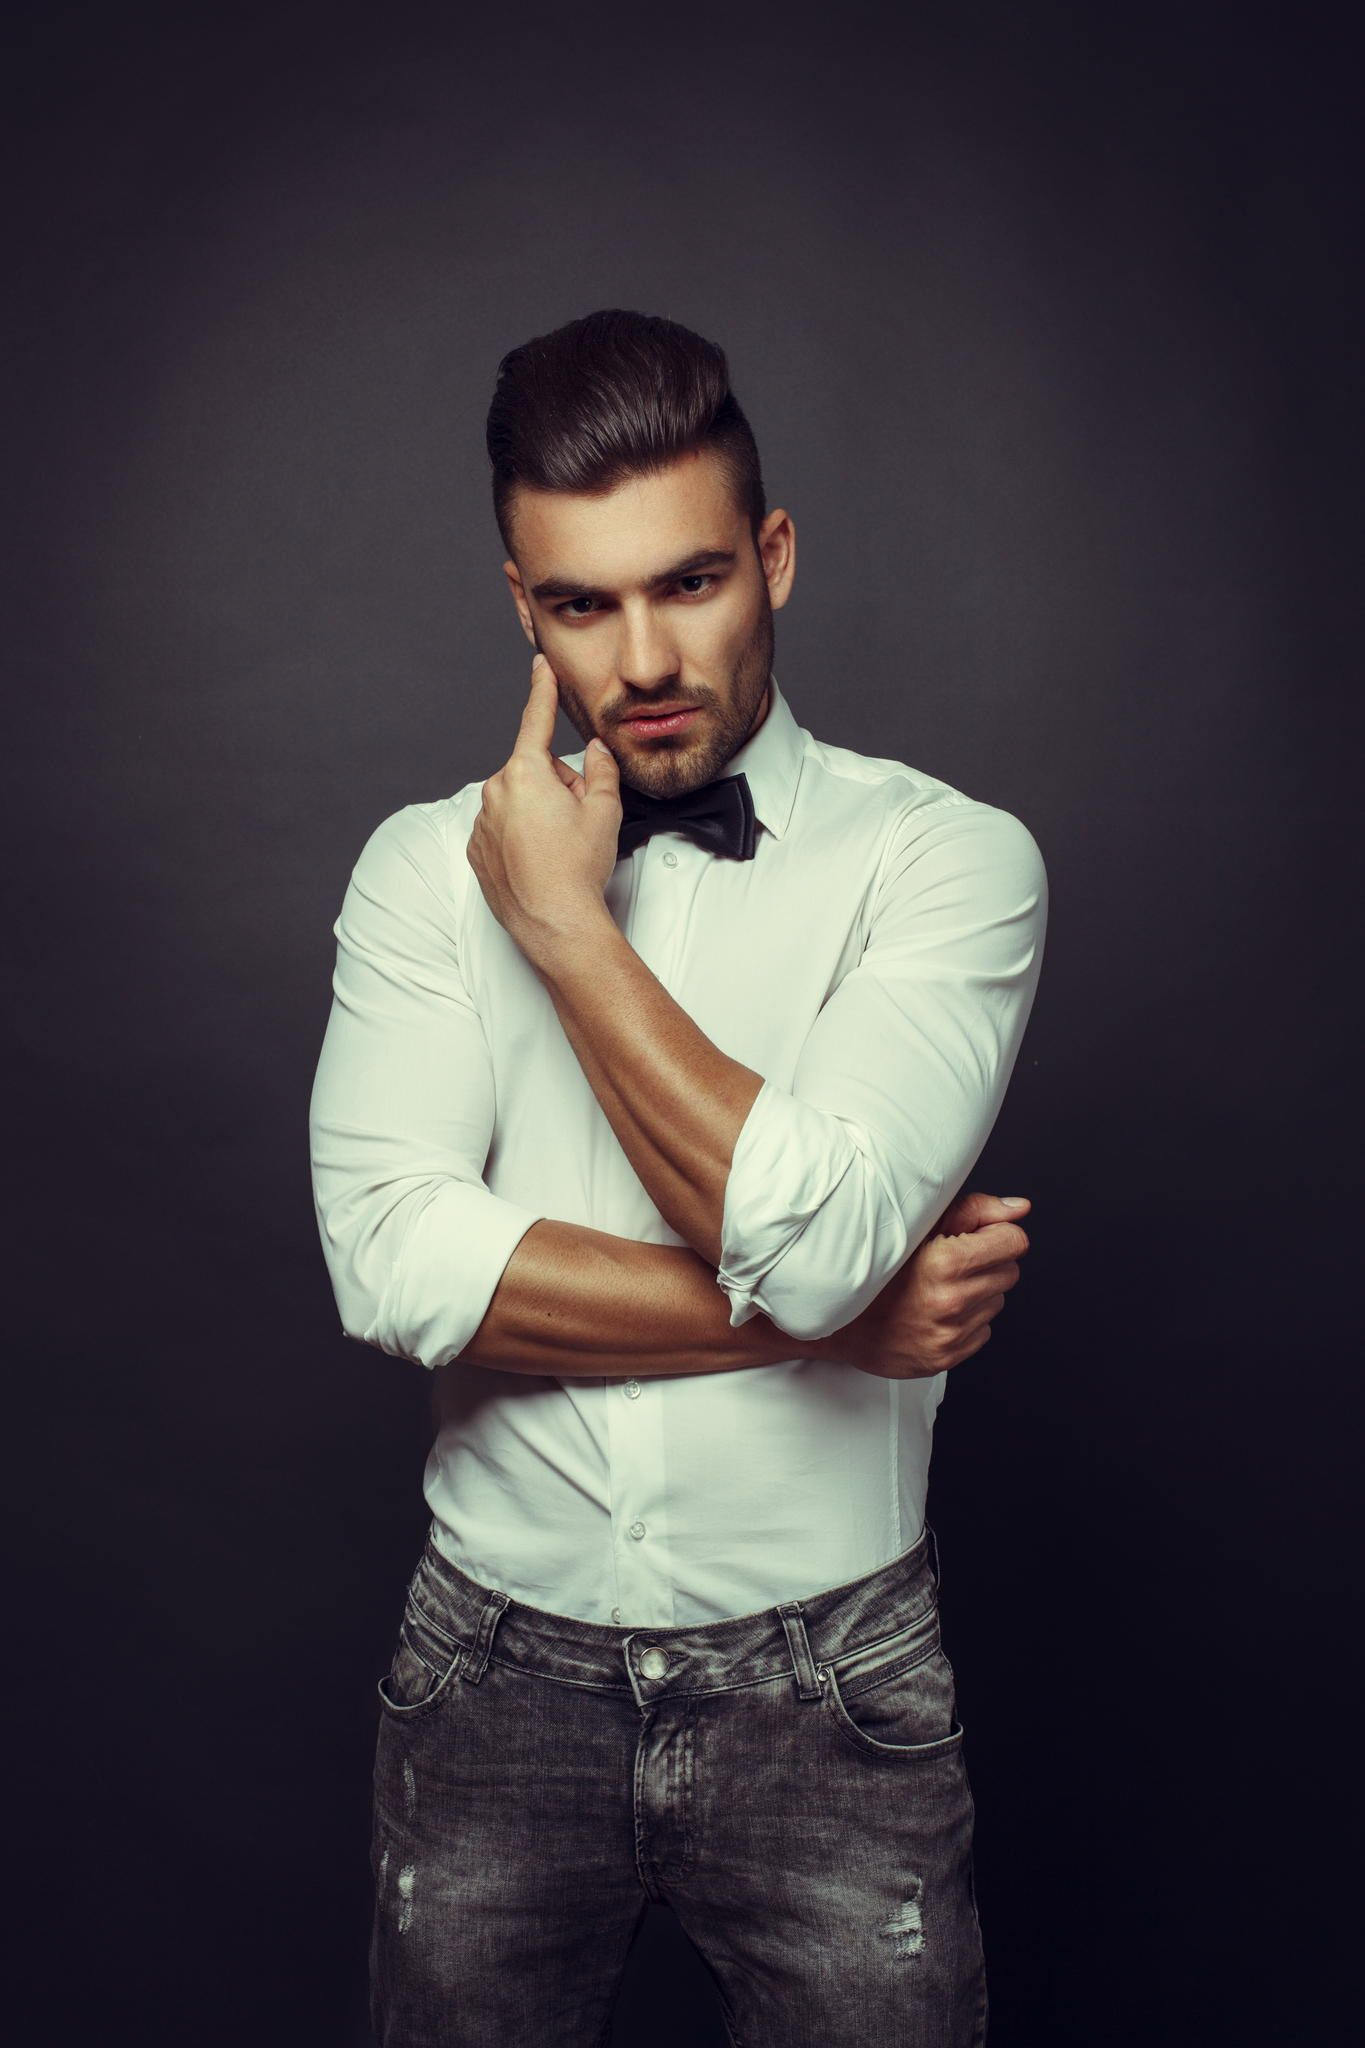 Man S Beauty Photography Poses For Men Poses For Men Indoor Photography Poses